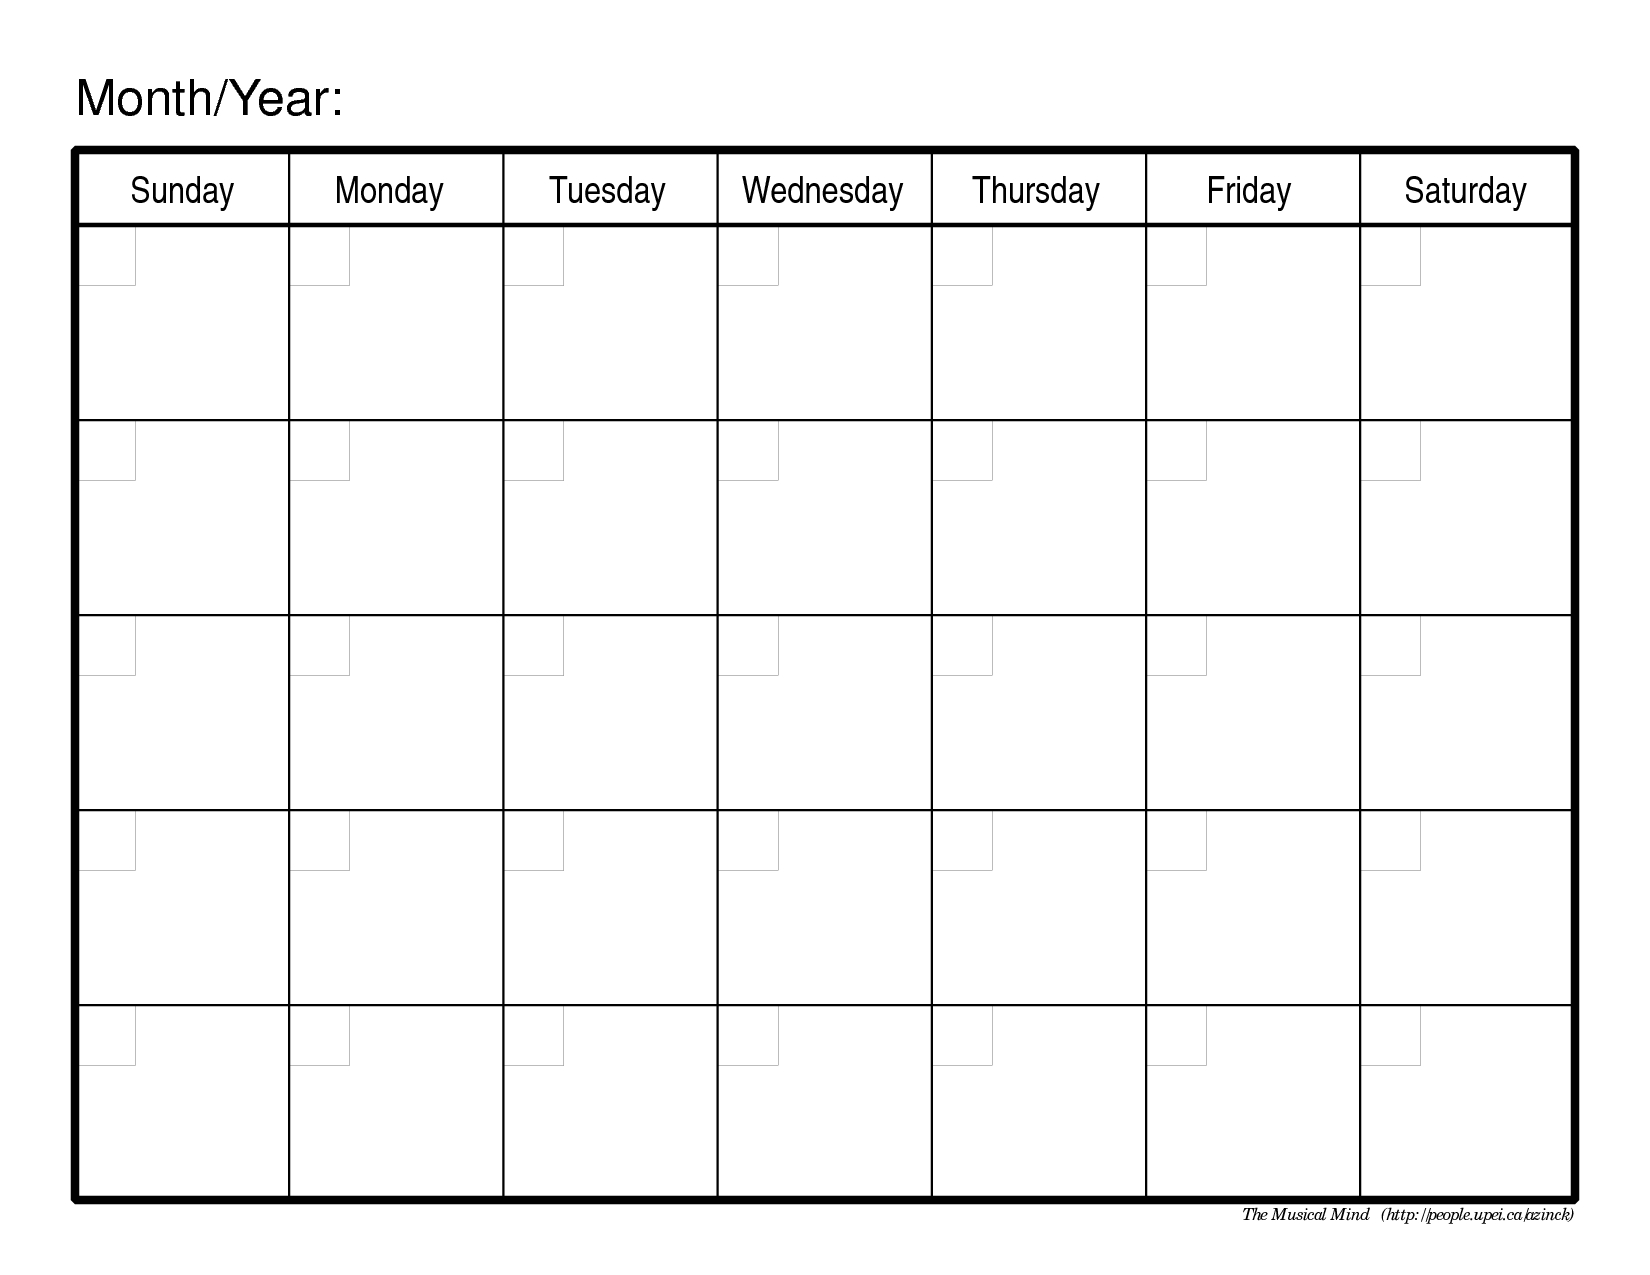 Free Printable Calendar - For My Running Schedule?? | Blank-Printable Monthly Calendar Monday Start